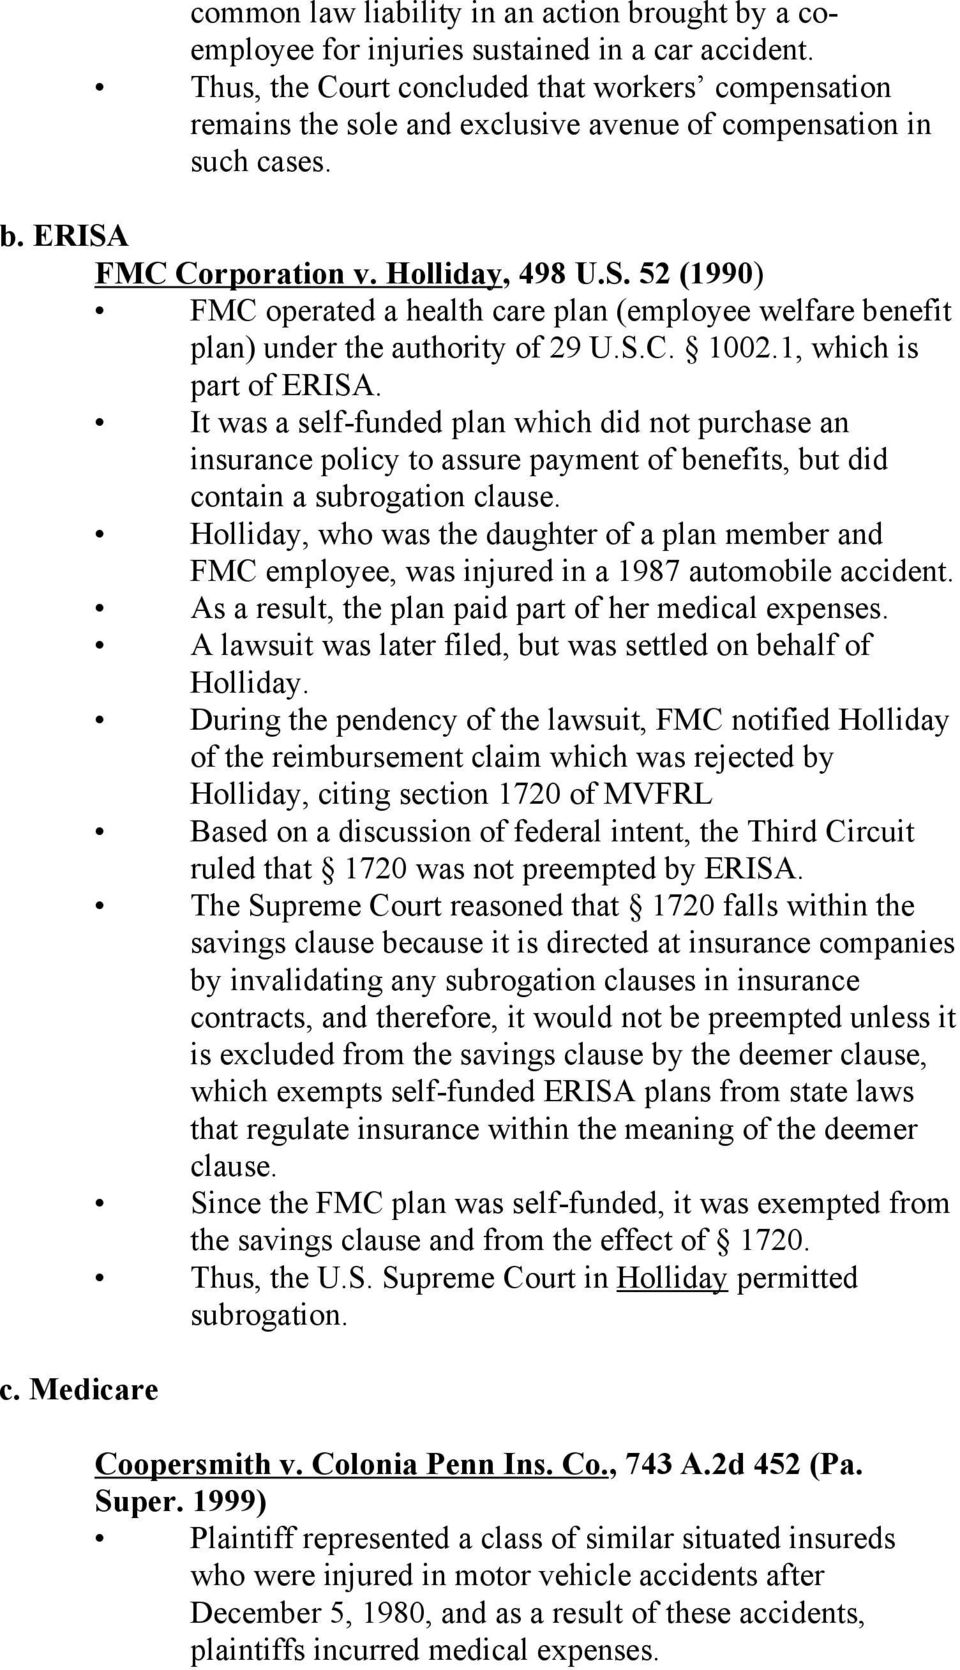 FMC Corporation v. Holliday, 498 U.S. 52 (1990) FMC operated a health care plan (employee welfare benefit plan) under the authority of 29 U.S.C. 1002.1, which is part of ERISA.